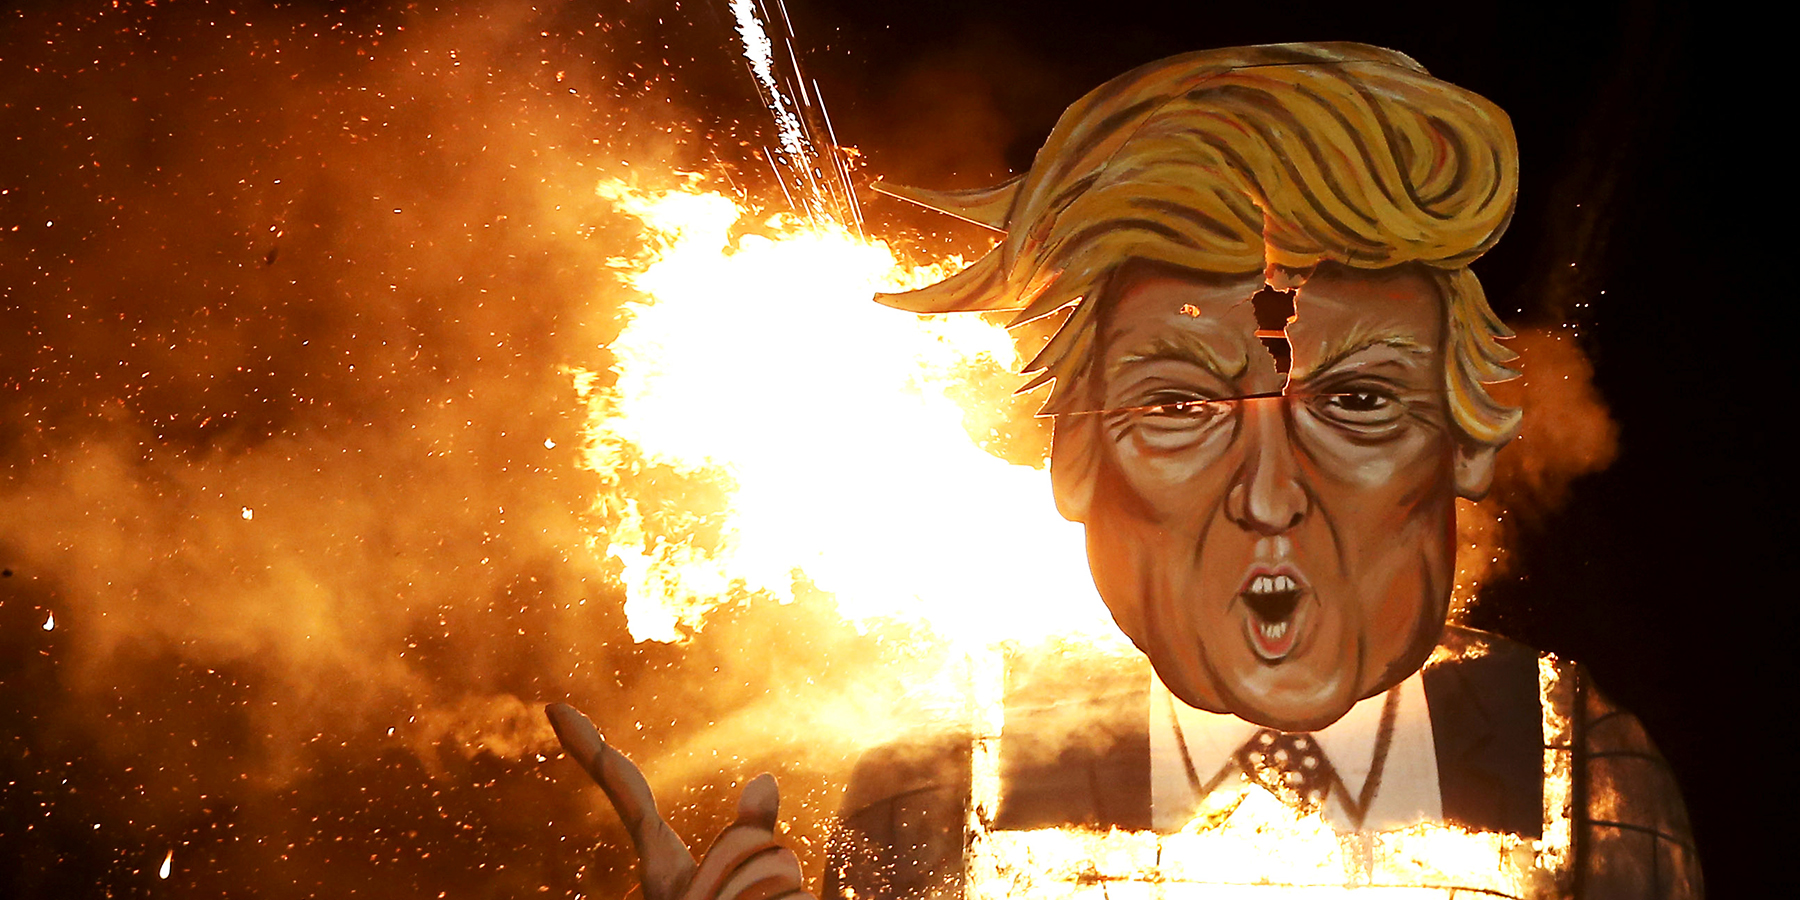 Trump effigy sent on fire during a Guy Fawkes celebration in the UK